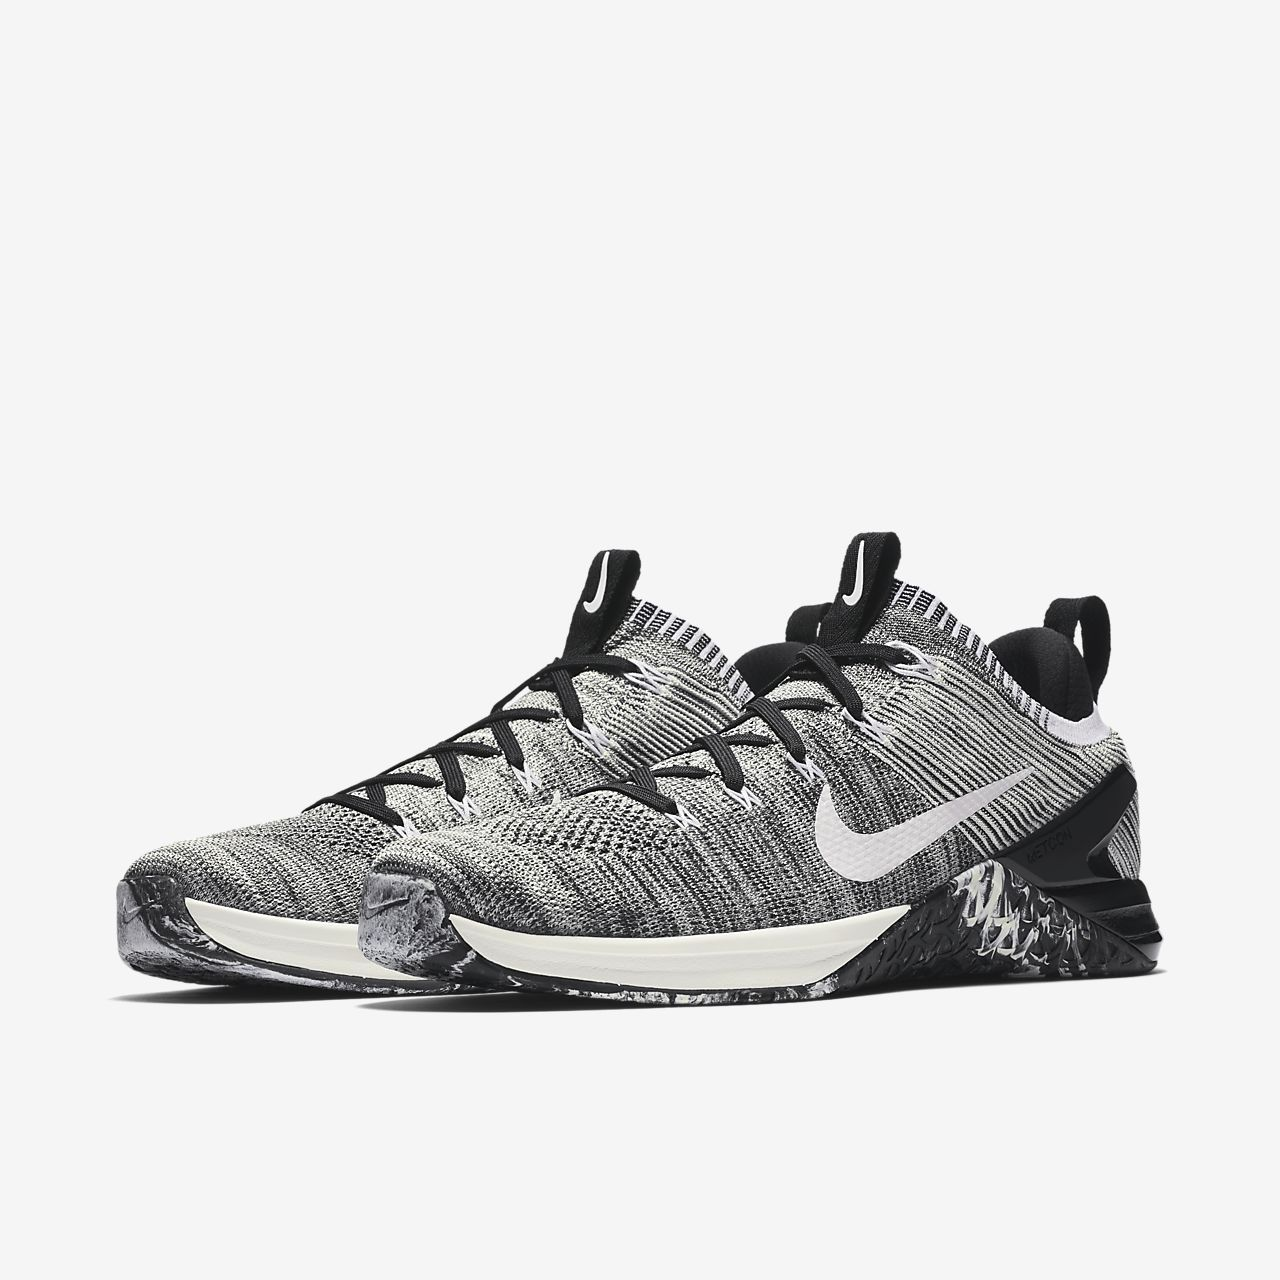 outlet store sale 09b28 8923d Nike Metcon DSX Flyknit 2 Men's Cross Training, Weightlifting Shoe ...